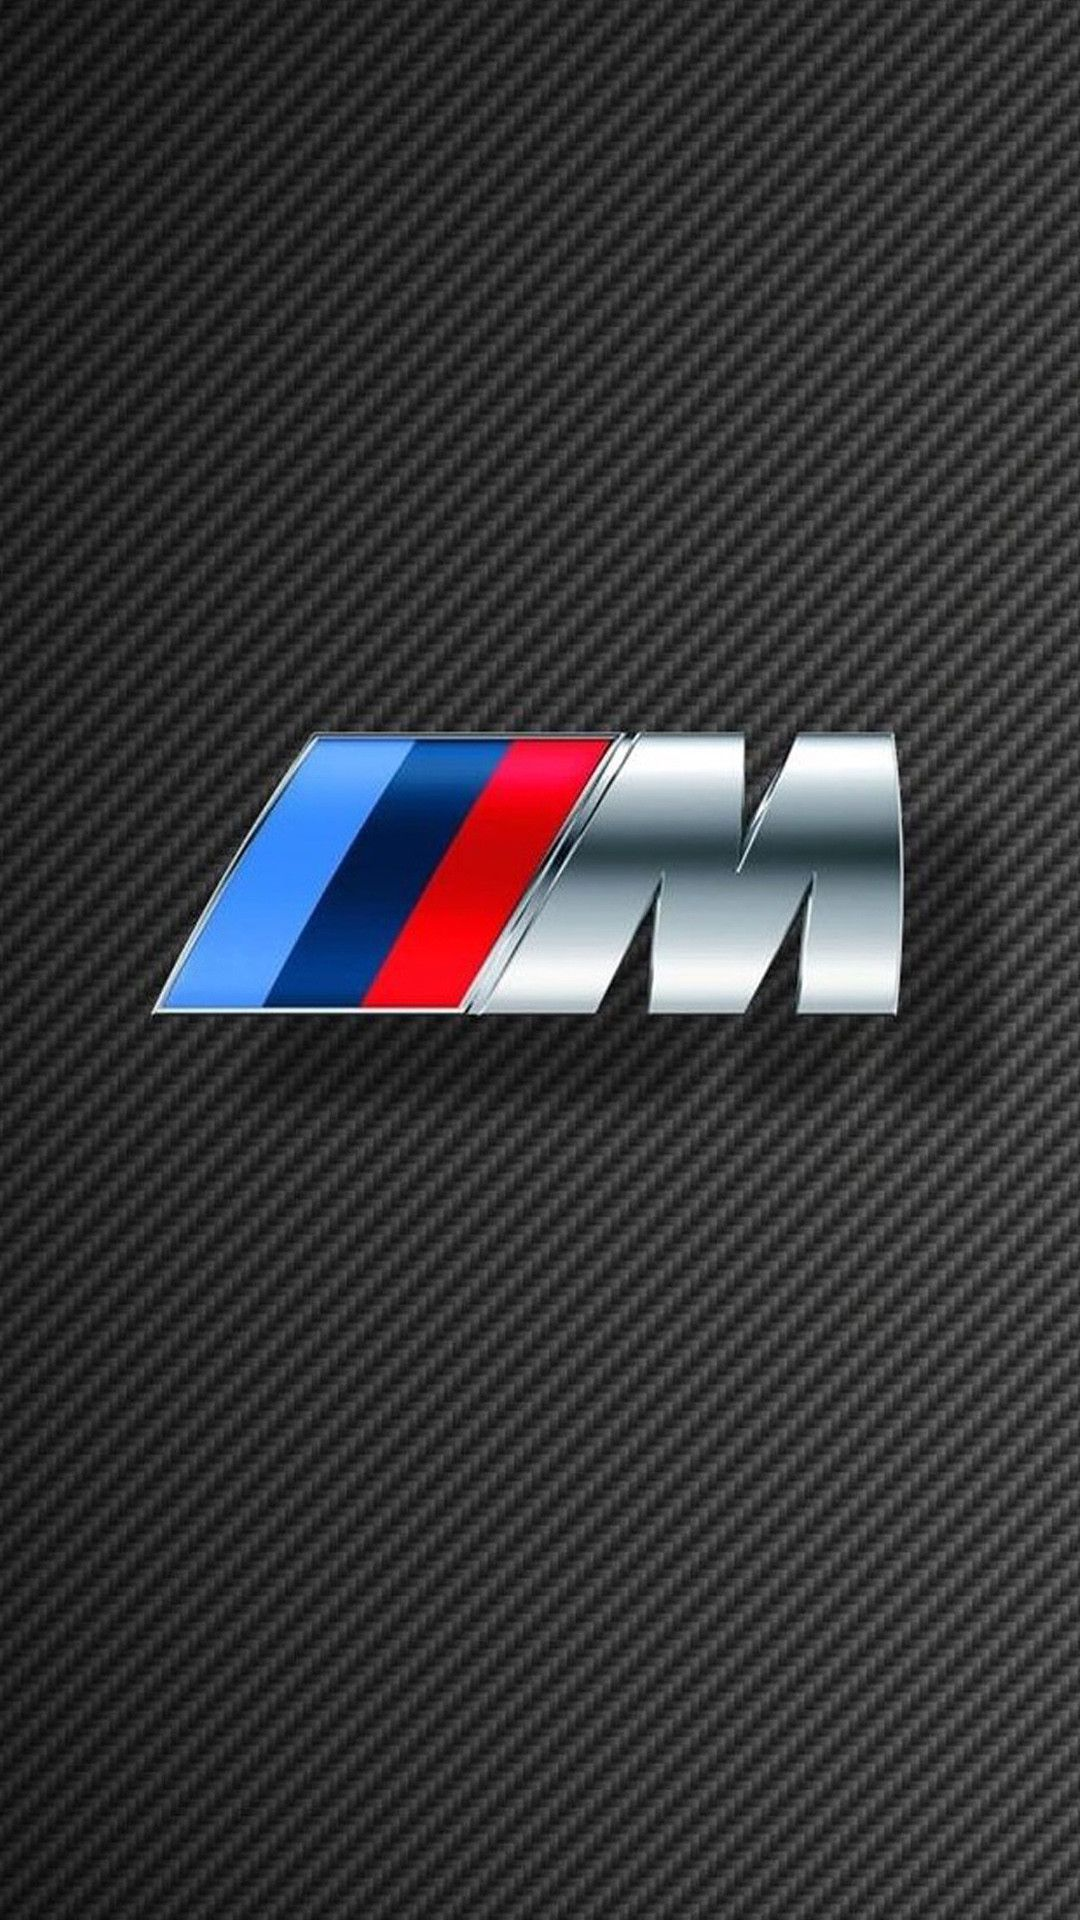 BMW Logo HD Wallpaper (70+ images) in 2020 | Bmw ...